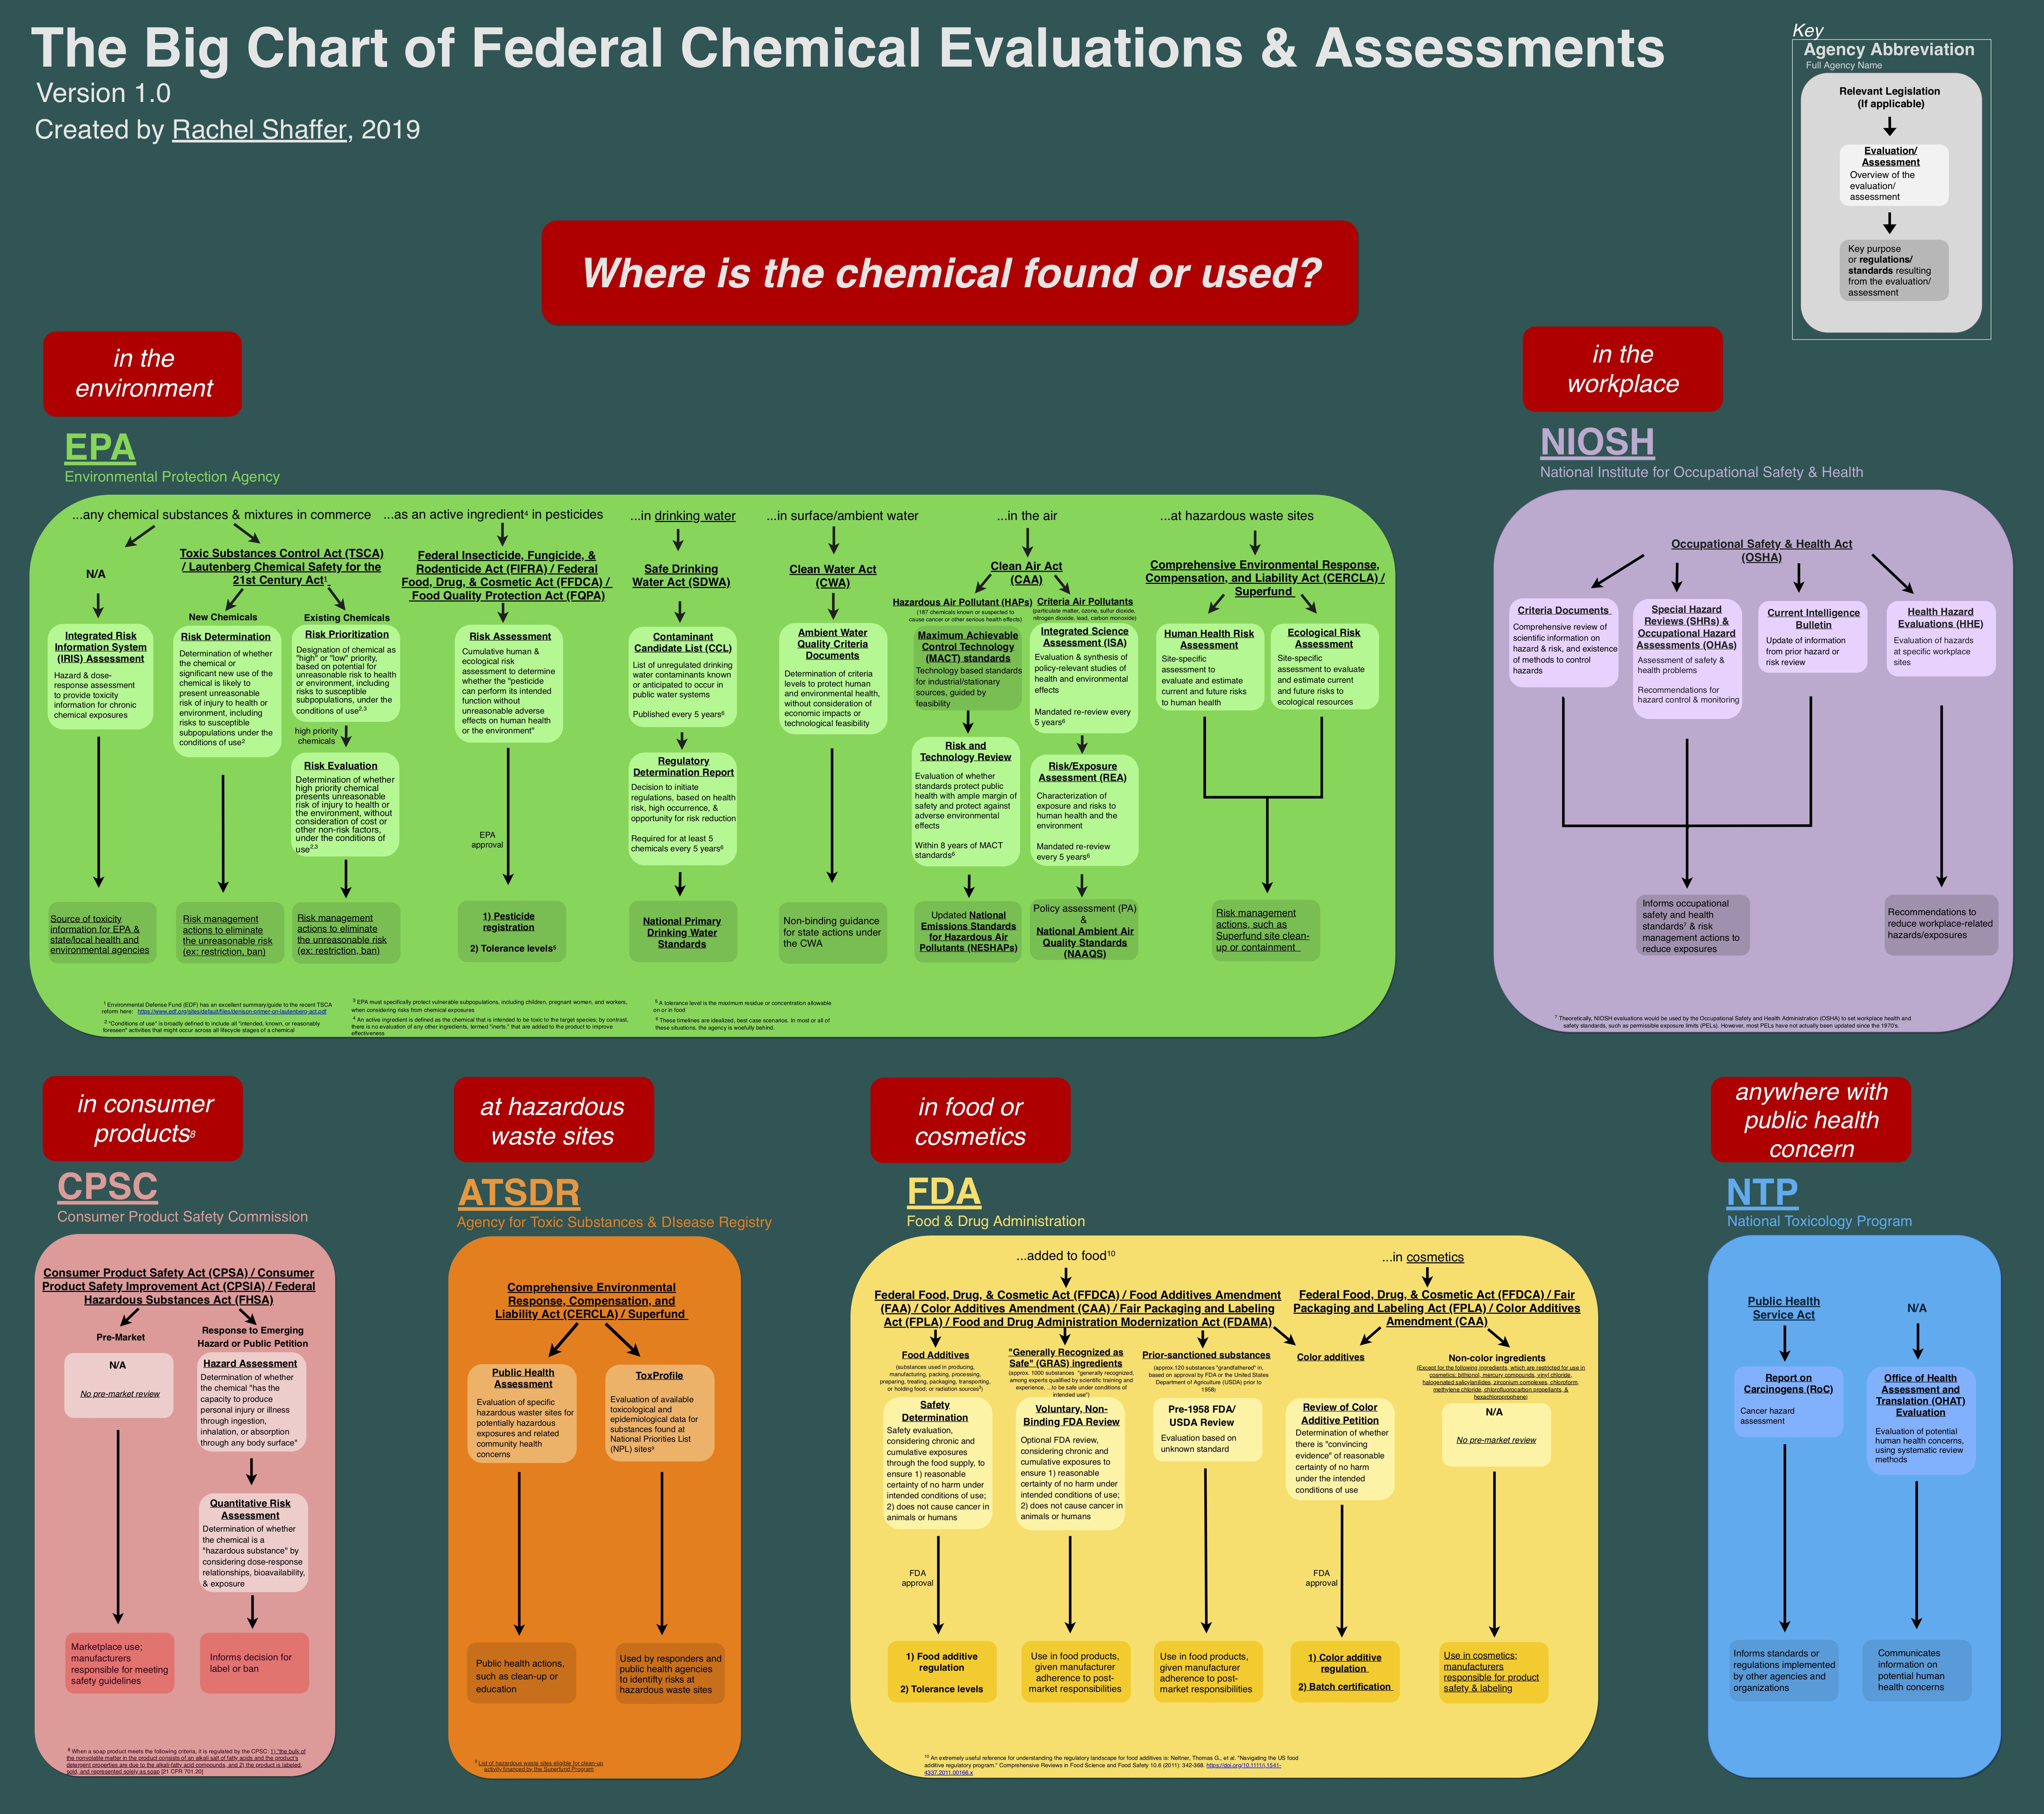 The Big Chart of Federal Chemical Evaluations